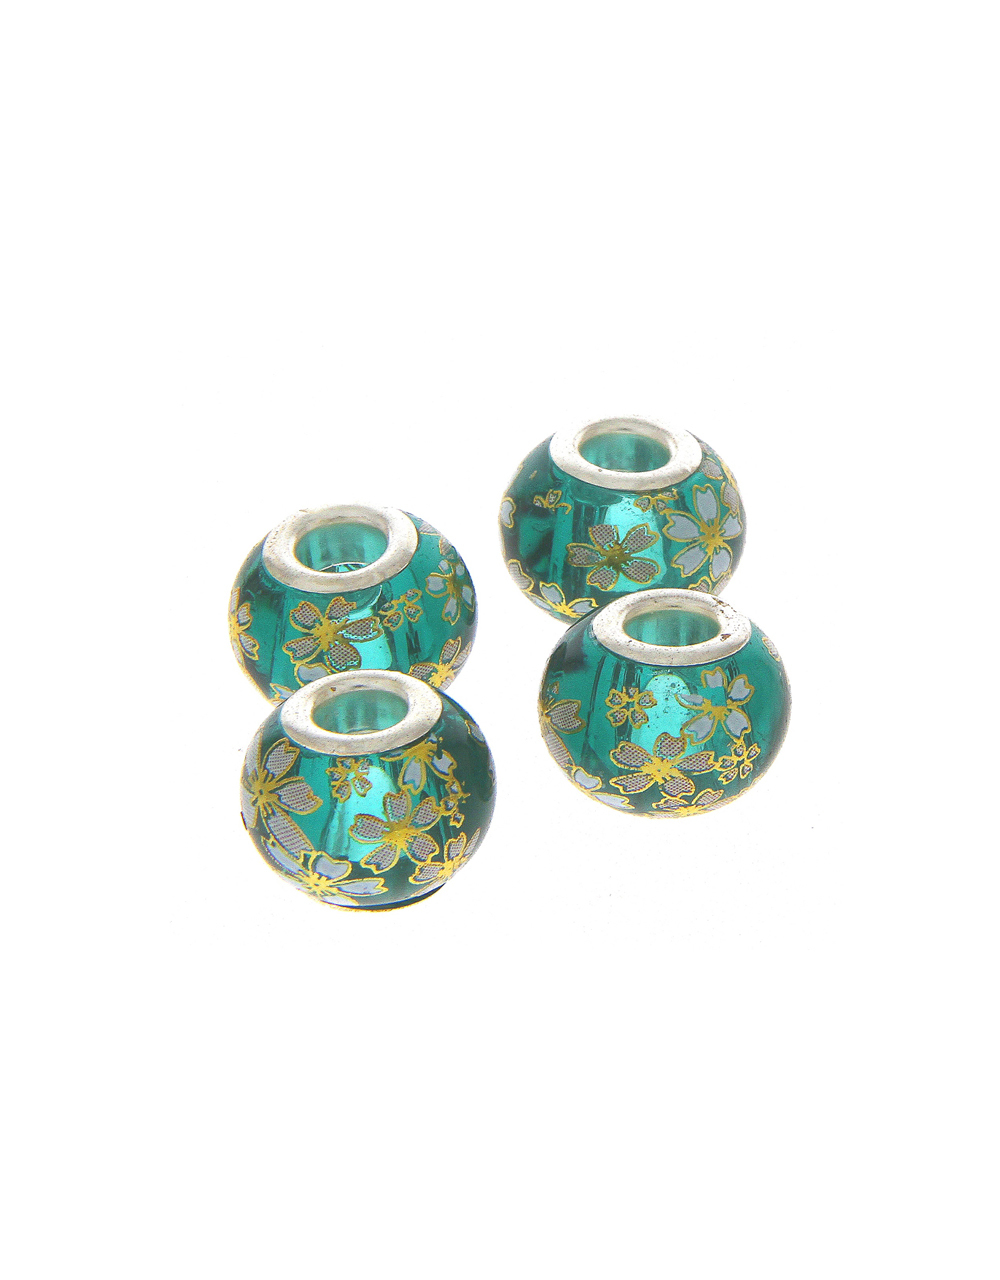 Rama Green Colour Floral Printed Beads for Jewellery Making